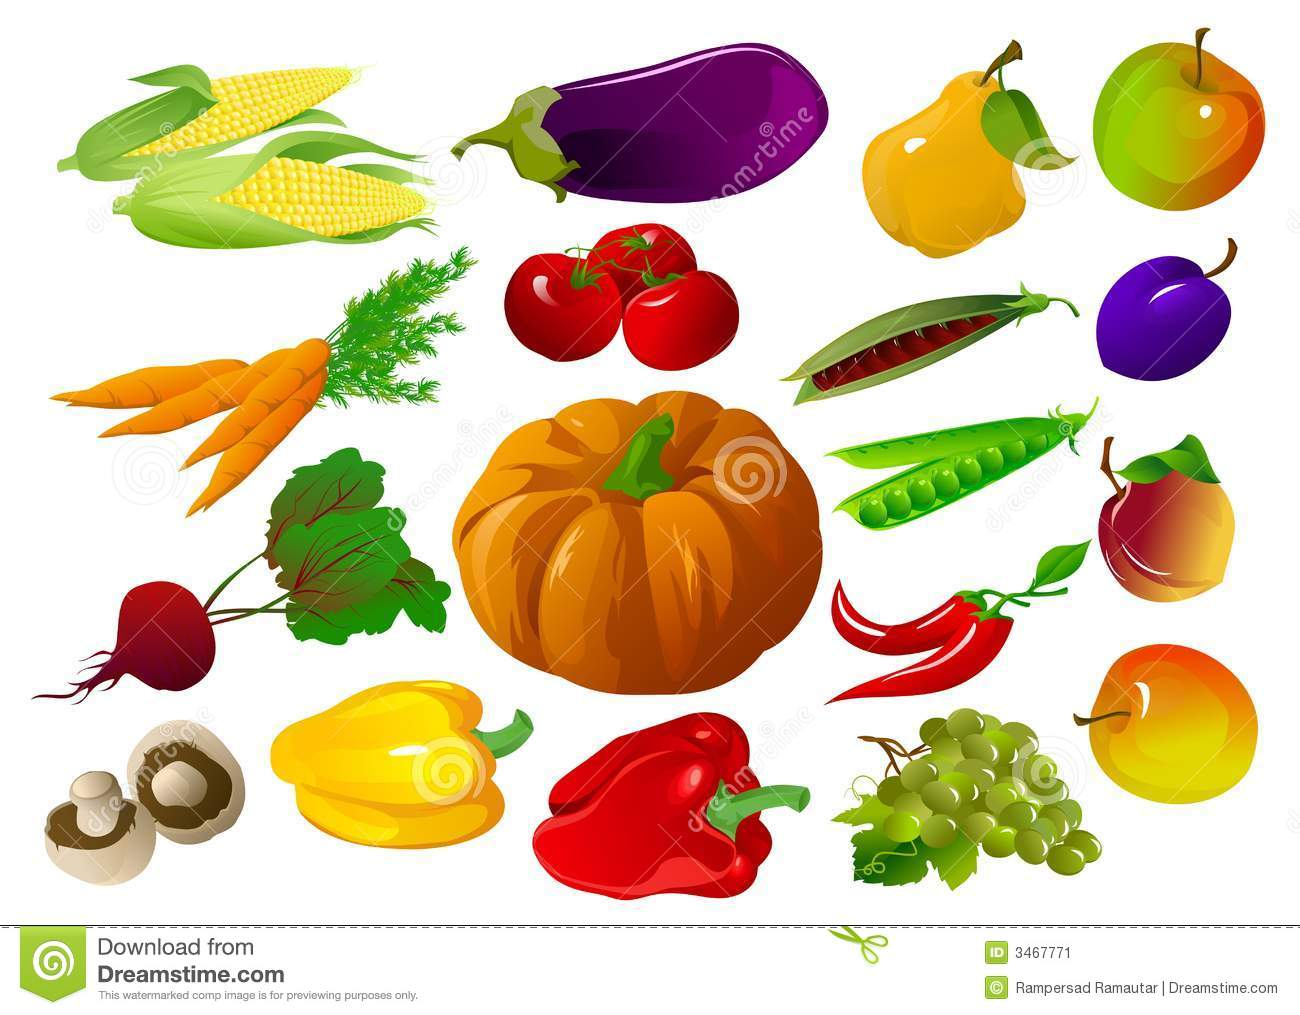 3841 Fruits free clipart.